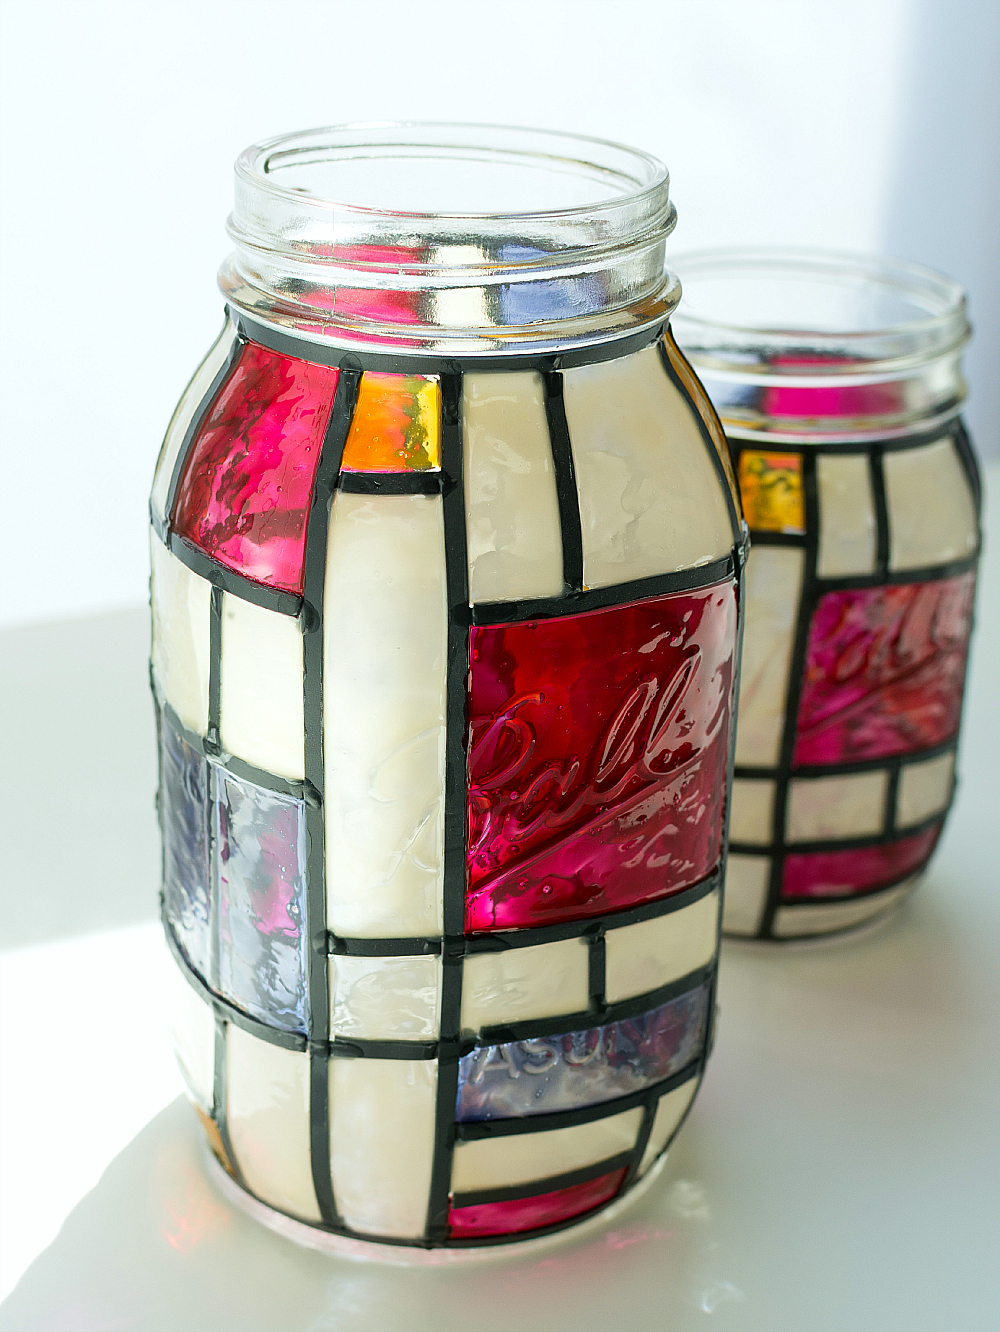 mondrian mason jar stained glass craft 3 of 24 Mondrian Mason Jars